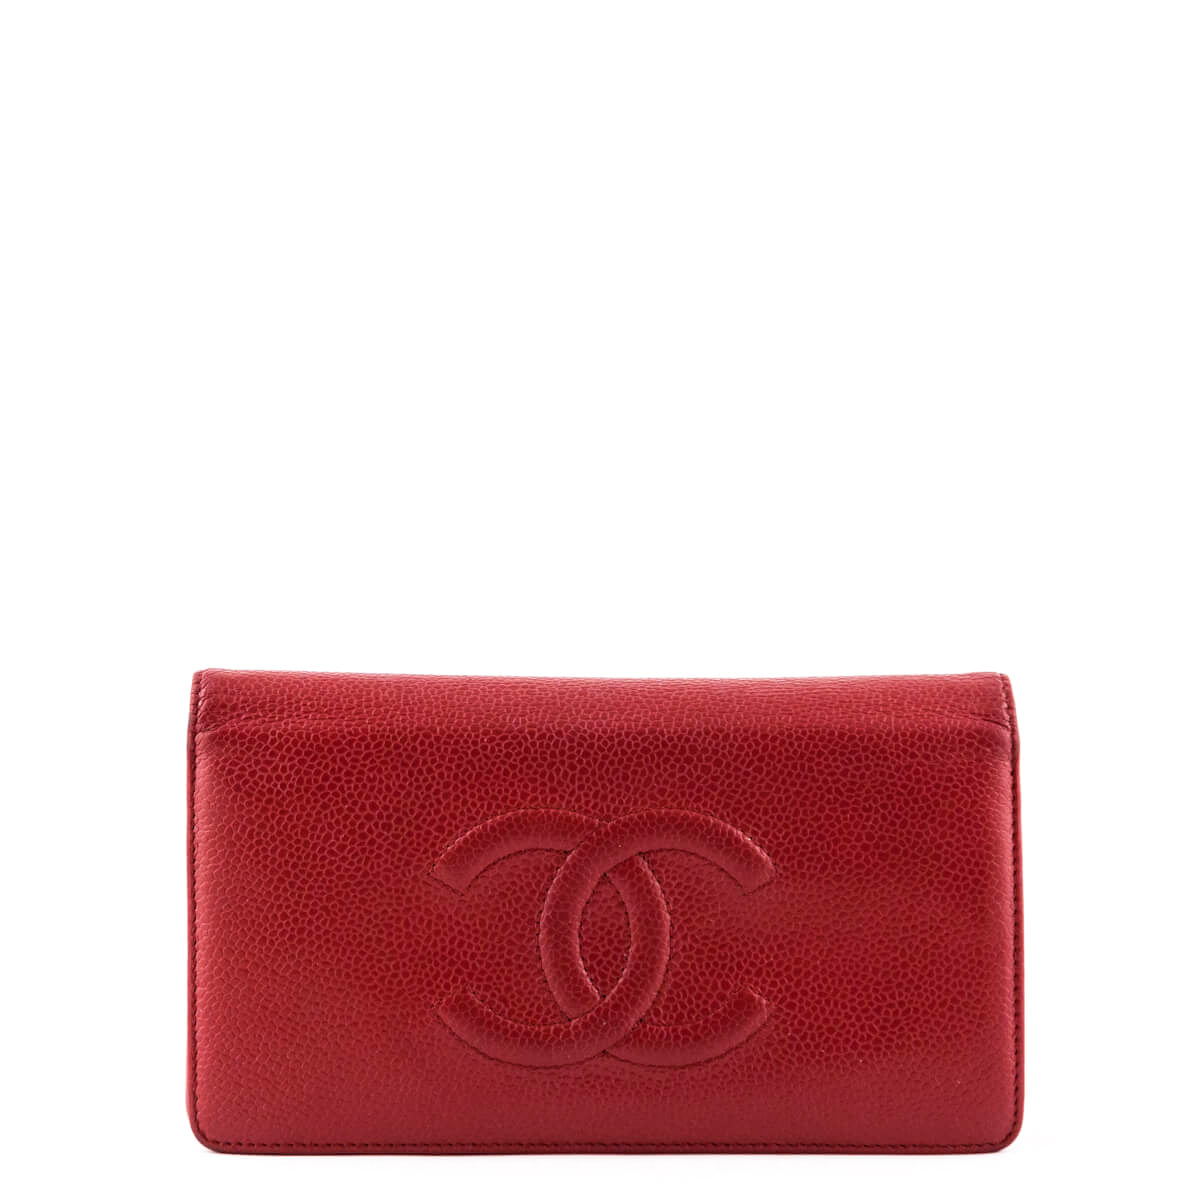 06988c4a31bd Chanel Red Caviar Timeless CC Yen Wallet - LOVE that BAG - Preowned  Authentic Designer Handbags ...